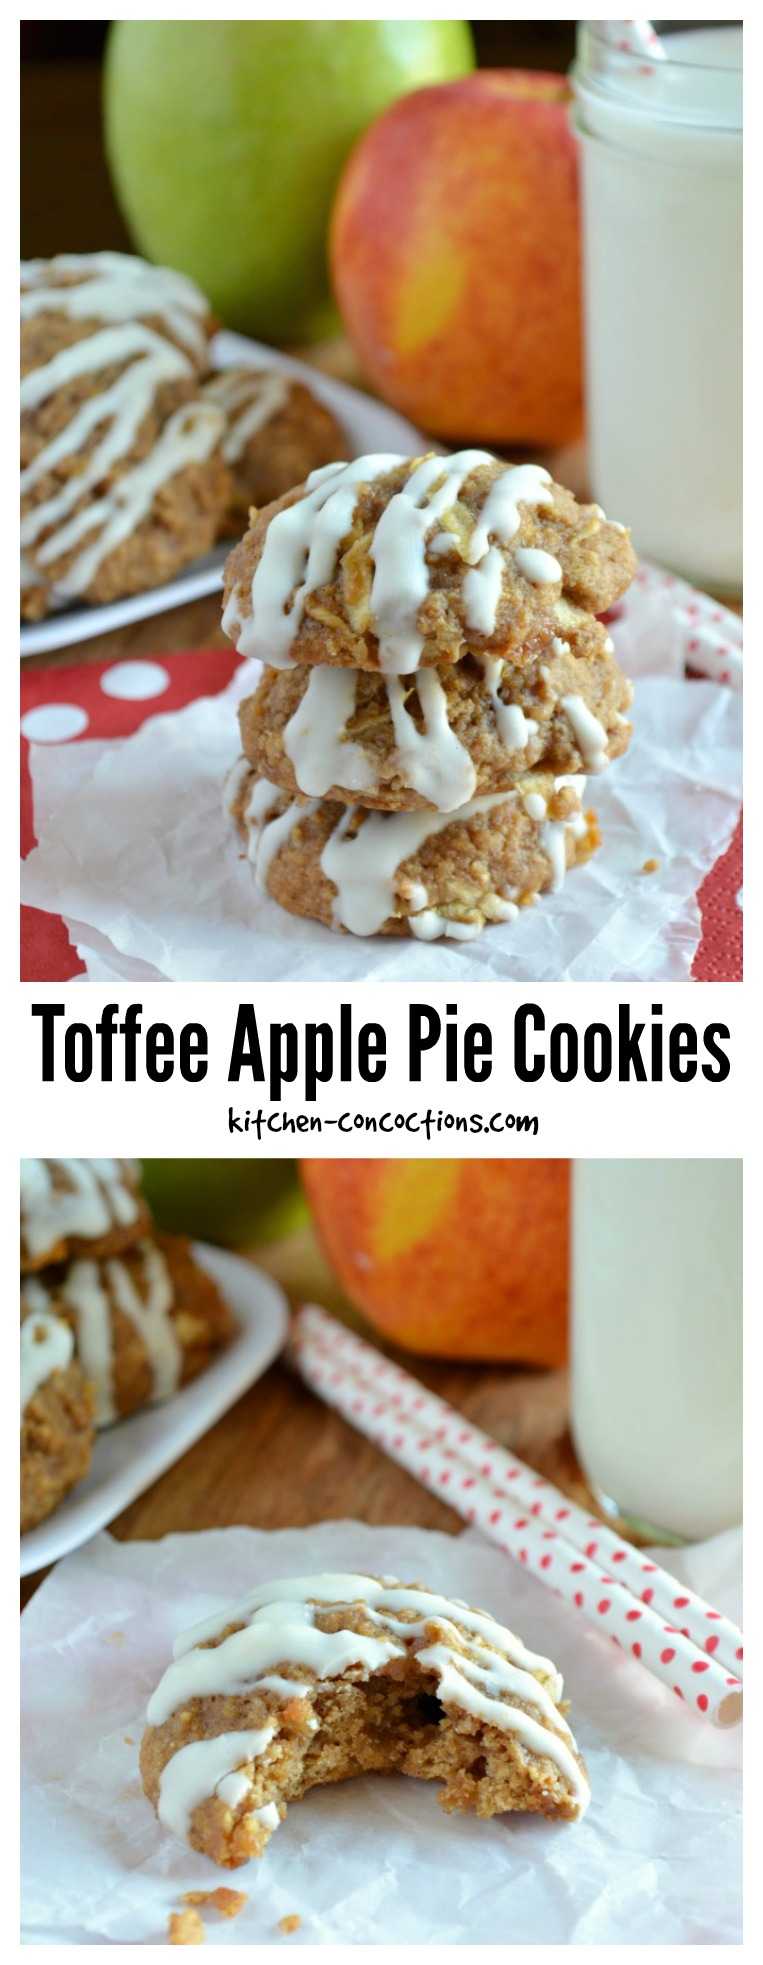 Toffee Apple Pie Cookies